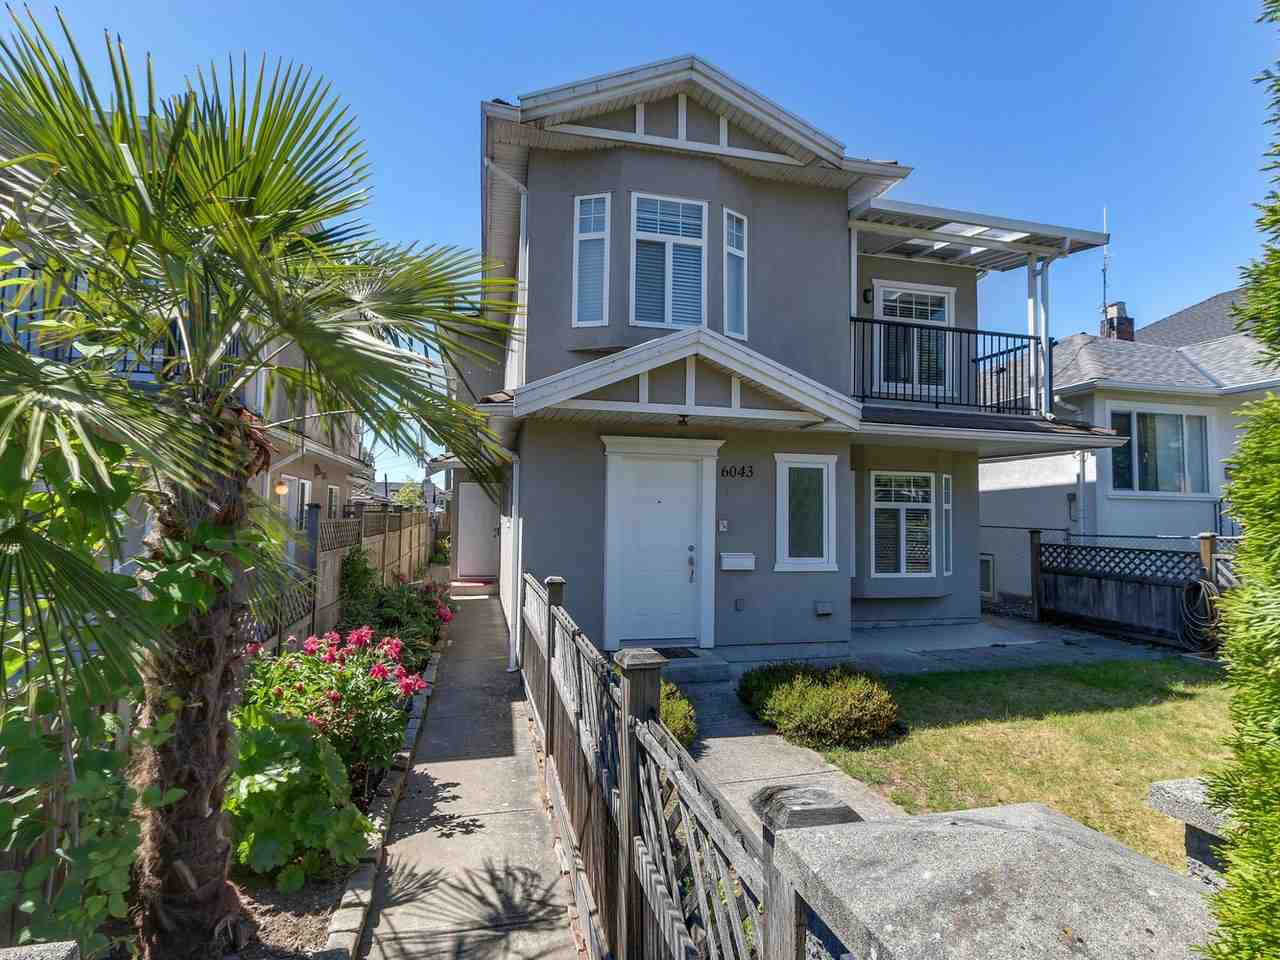 Sold: 6045 Main Street, Vancouver, BC